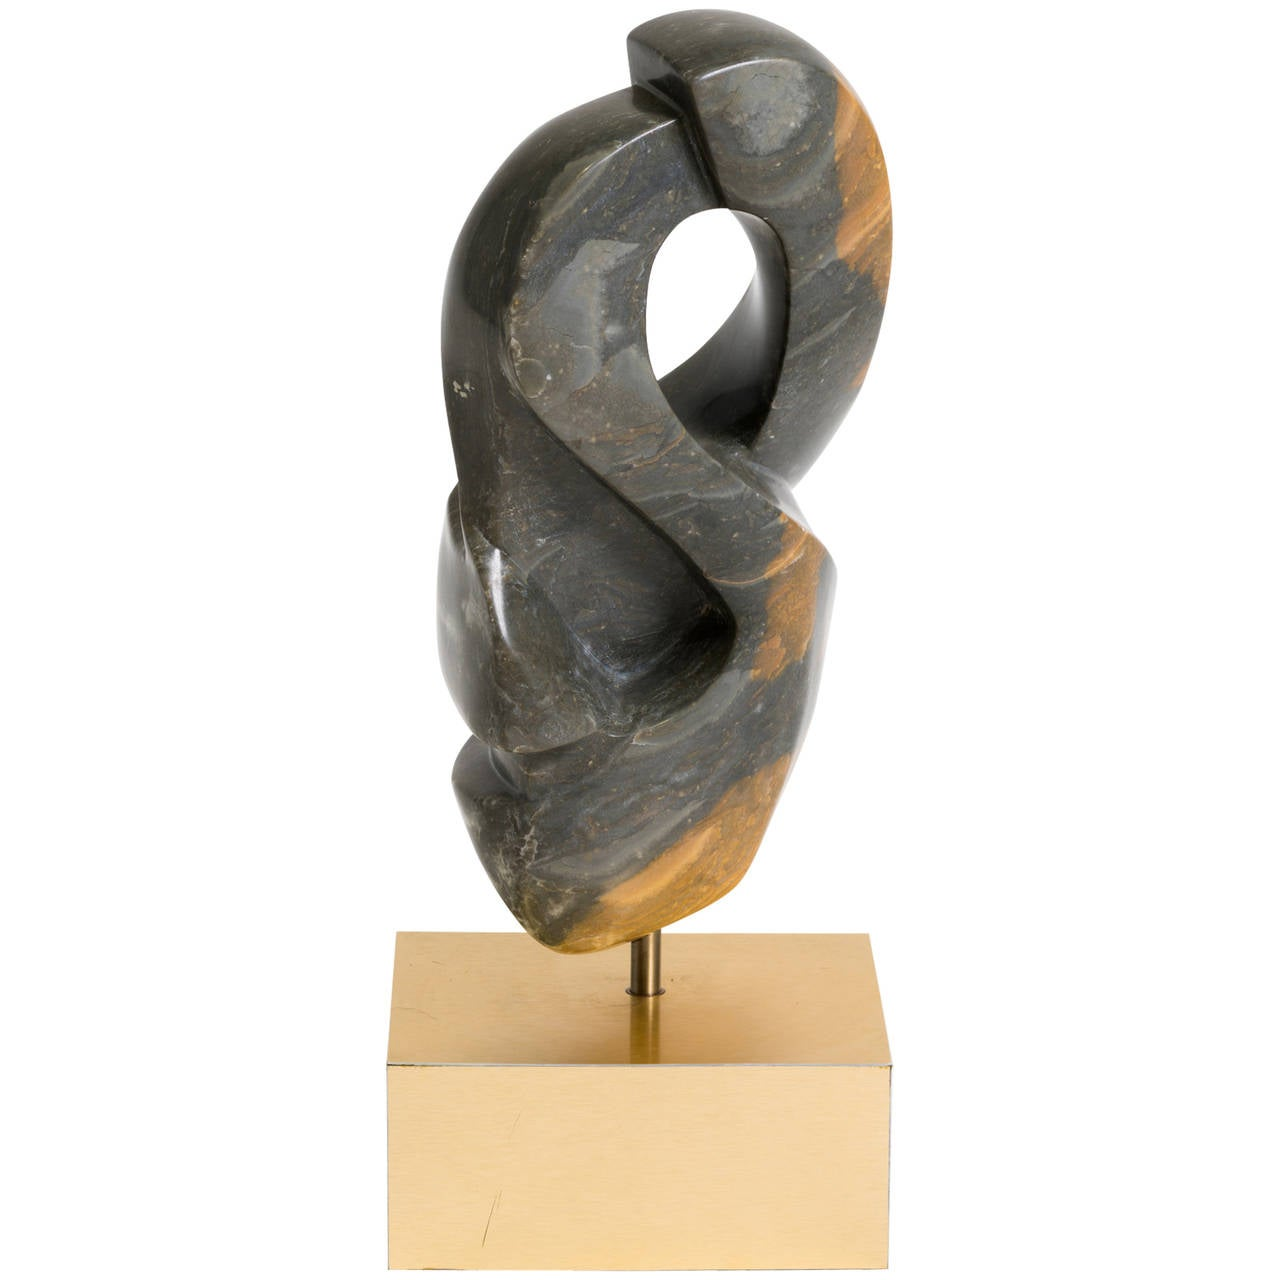 Green Marble Abstract Sculpture on Metal Base